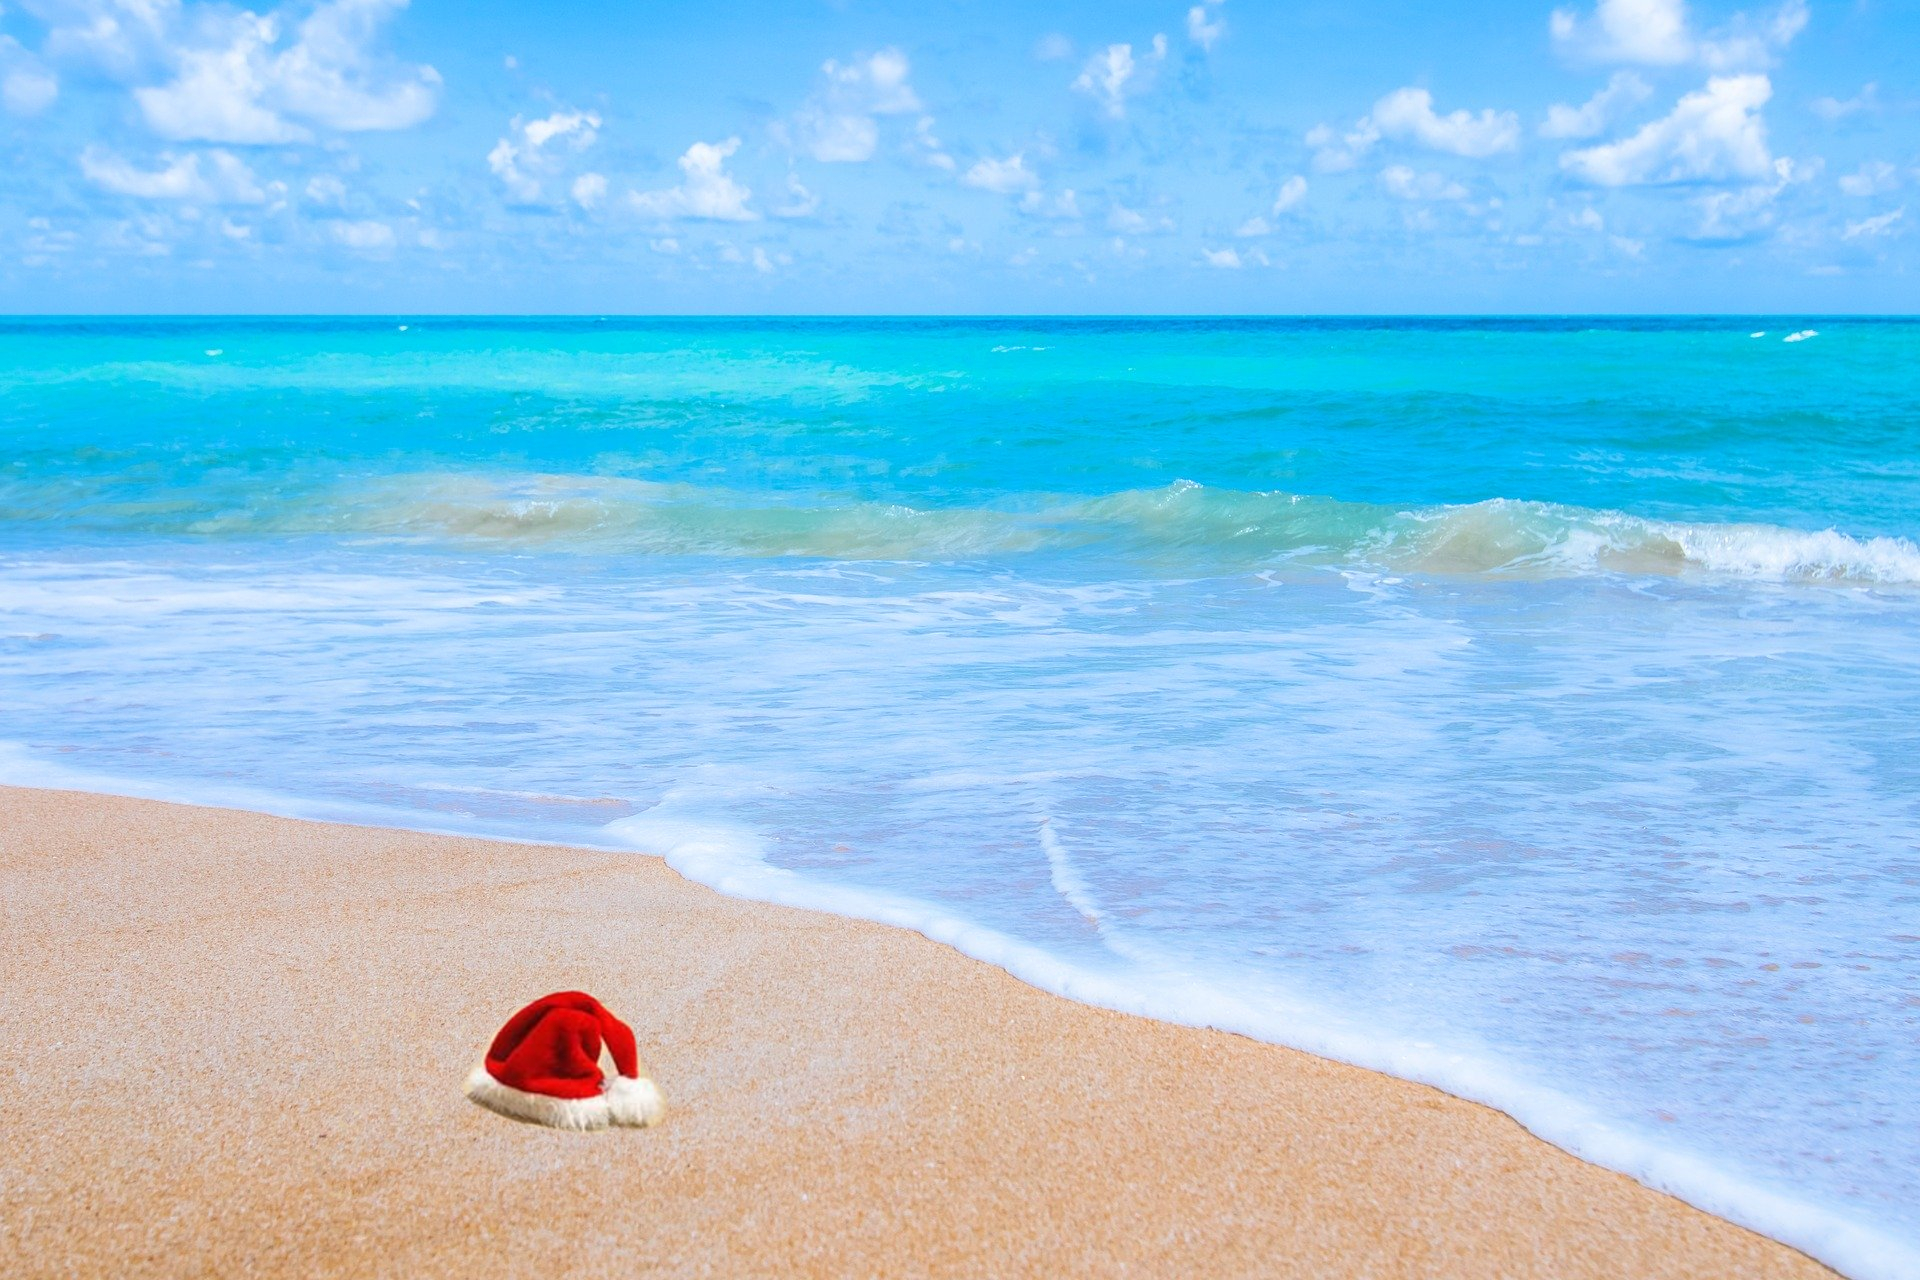 What Does Santa Claus Do In The Summer?